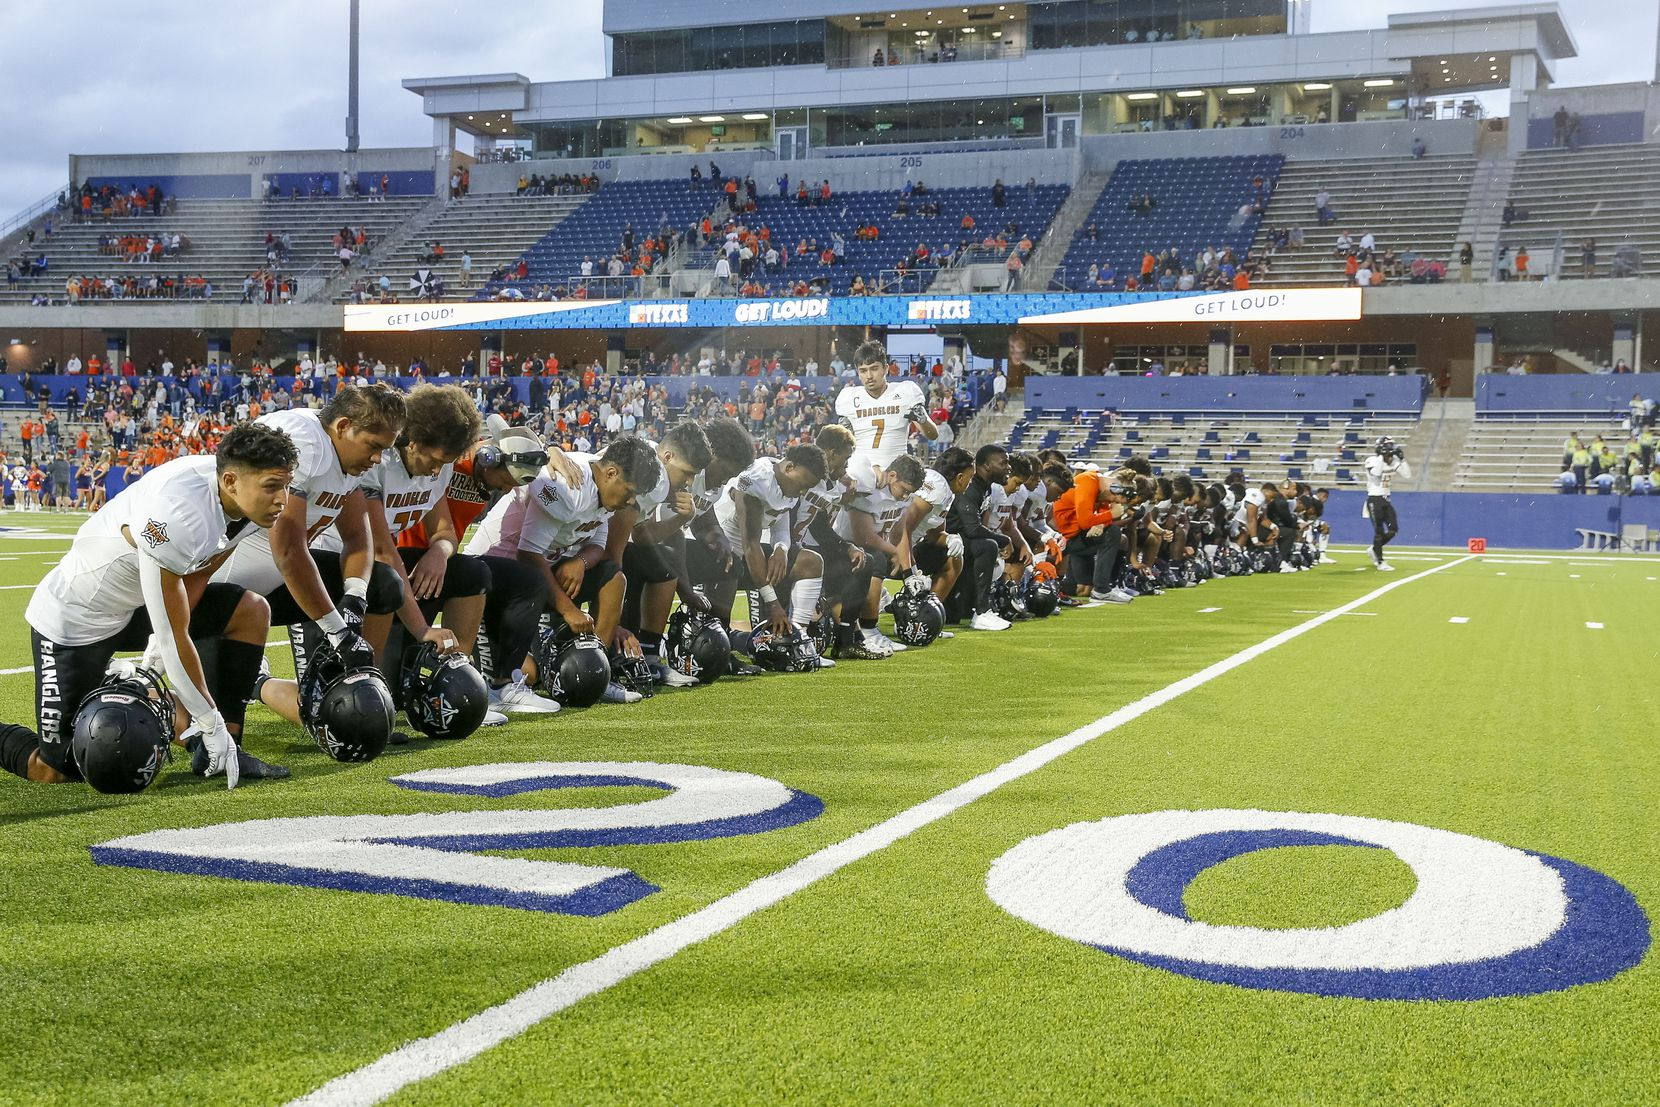 West Mesquite football players and coaches kneel at the 22 yard line in honor of former West Mesquite football player Aaron Lowe before a game against McKinney North at McKinney ISD Stadium on Thursday, Sept. 30, 2021, in Mckinney, Texas. Lowe was shot and killed on Sept. 26 in Salt Lake City, Utah. Lowe attended the University of Utah and played defensive back for the Utes. (Elias Valverde II/The Dallas Morning News)